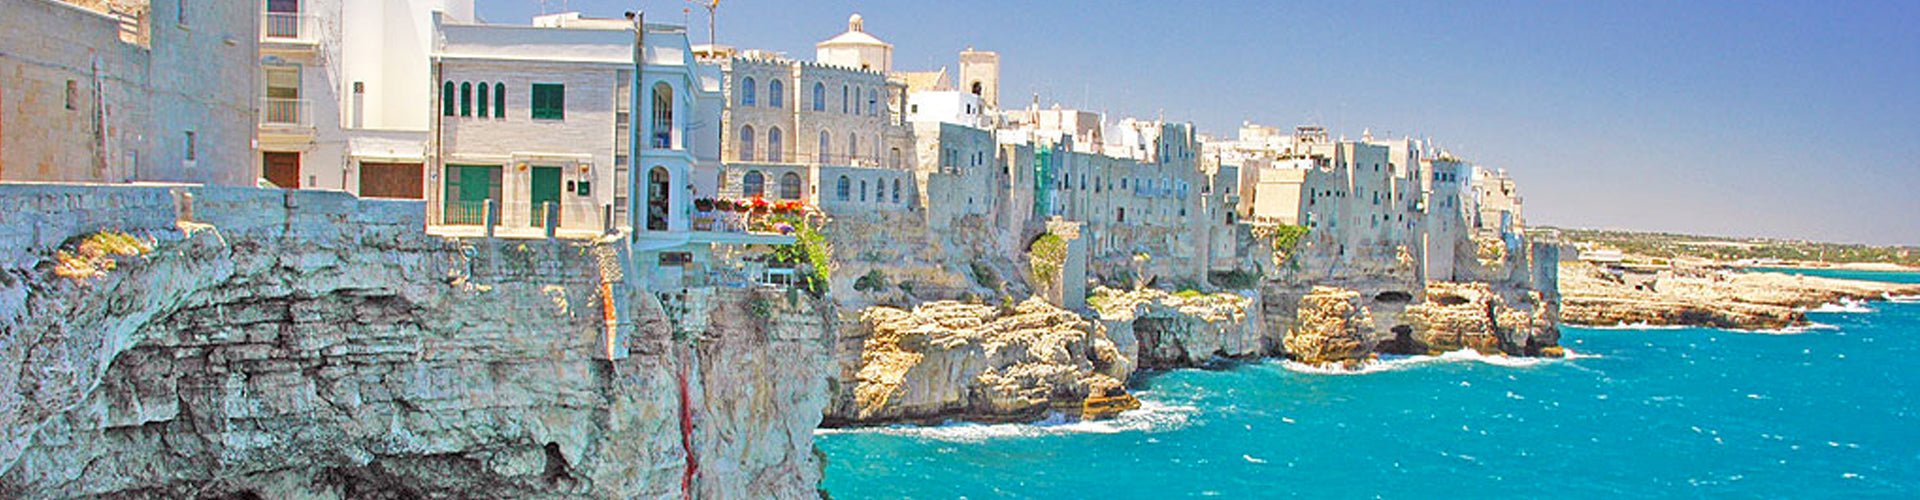 The Coastline of Apulia in Southern Italy